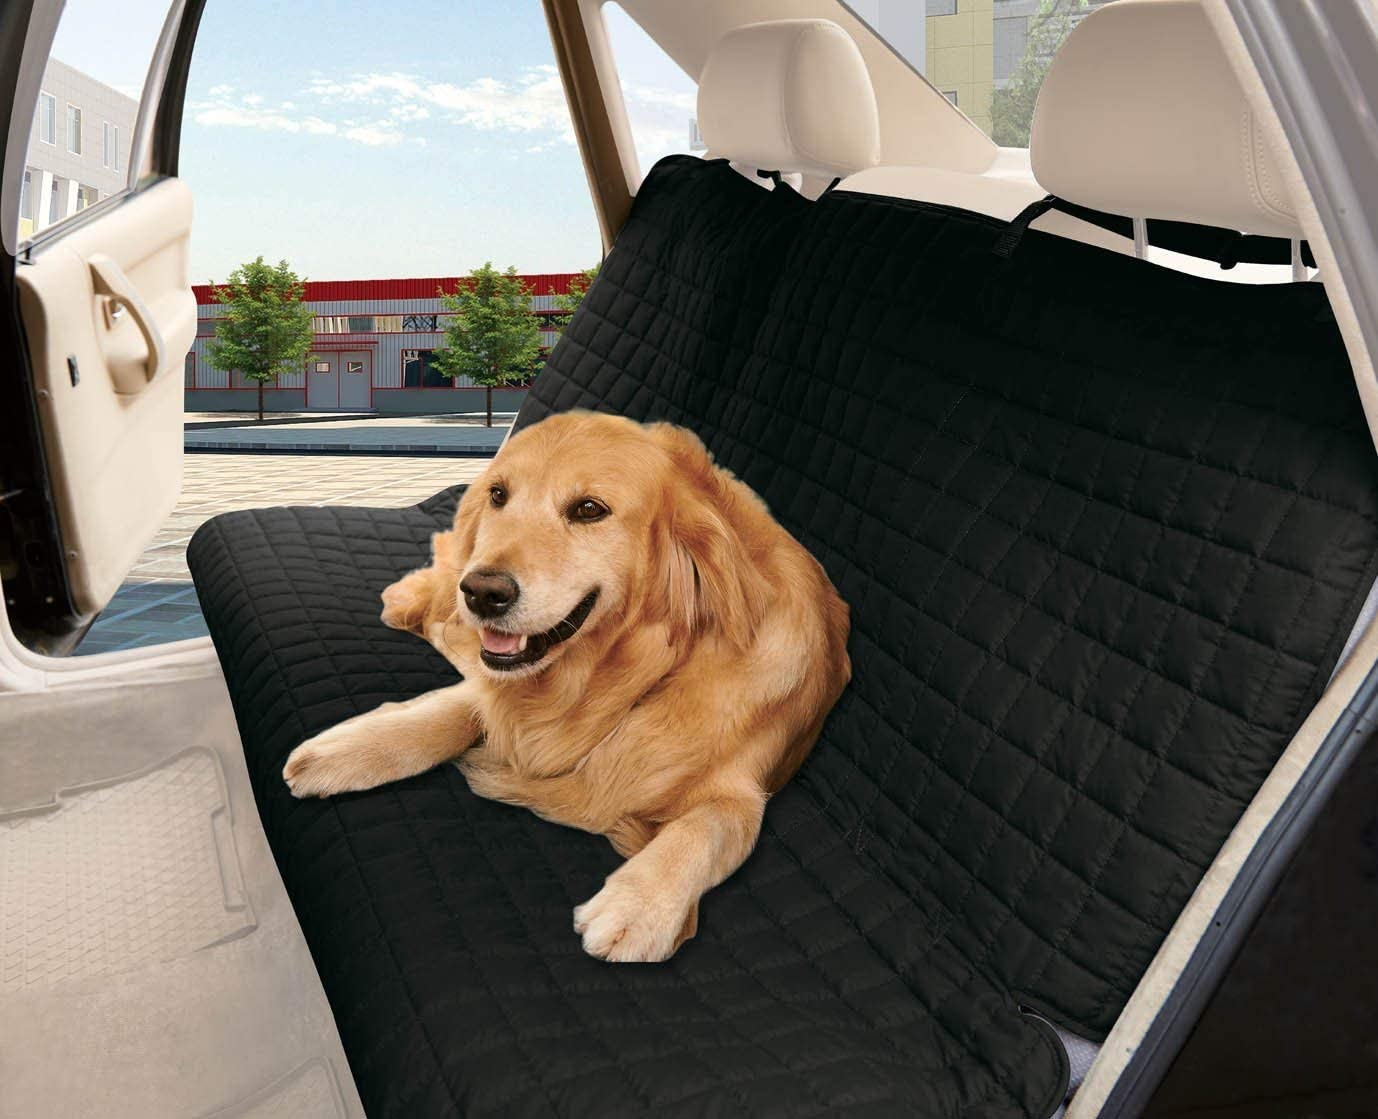 Elegance Linen Quilted Design 100 Waterproof Premium Quality Bench Car Seat Protector Cover Entire Rear Seat for Pets – TIES TO STOP SLIPPING OFF THE BENCH